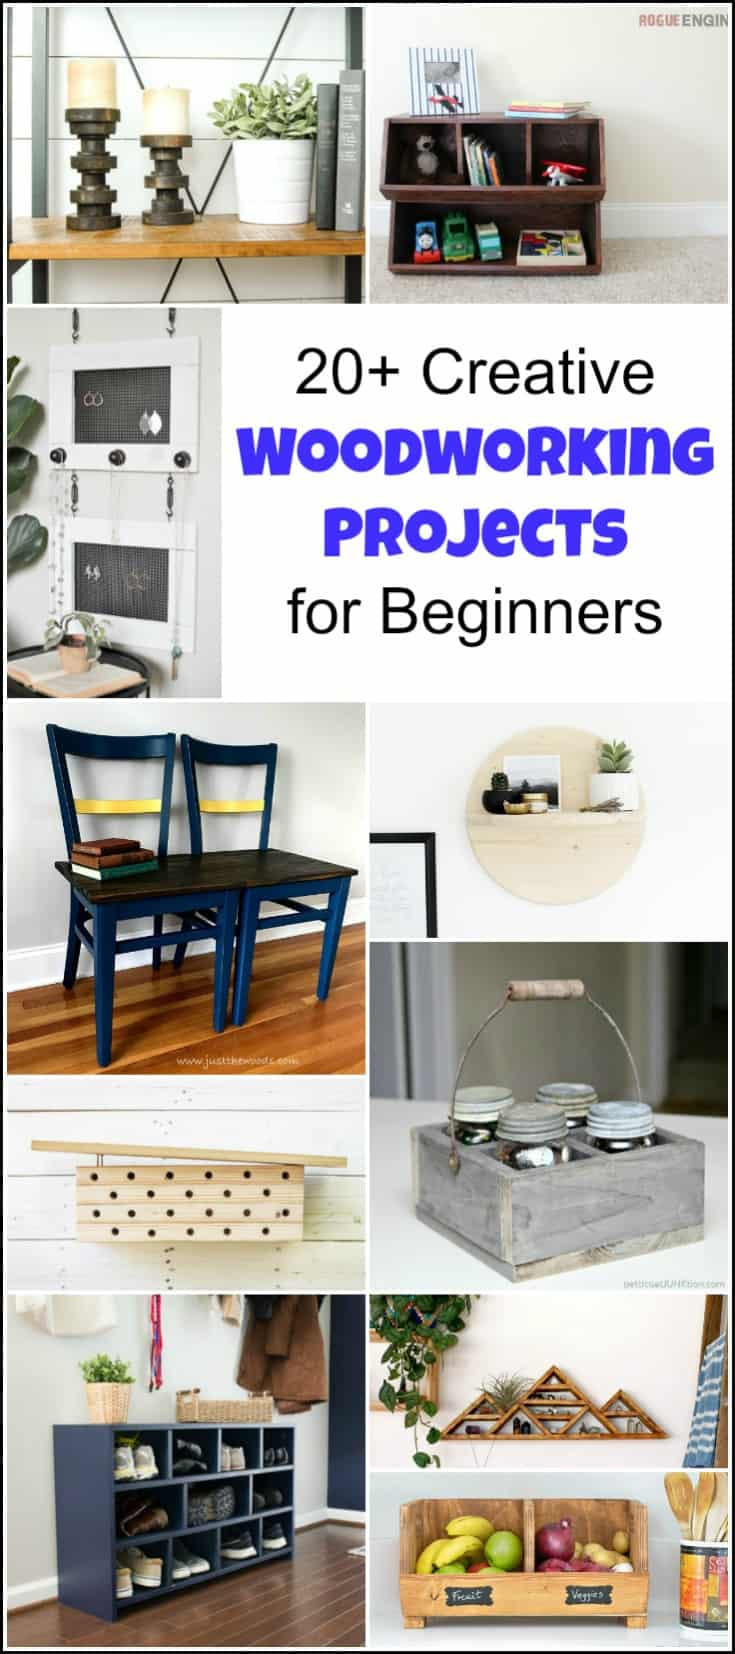 Best ideas about DIY Project Plans . Save or Pin 20 Creative Beginner Woodworking Projects for the Serial DIYer Now.